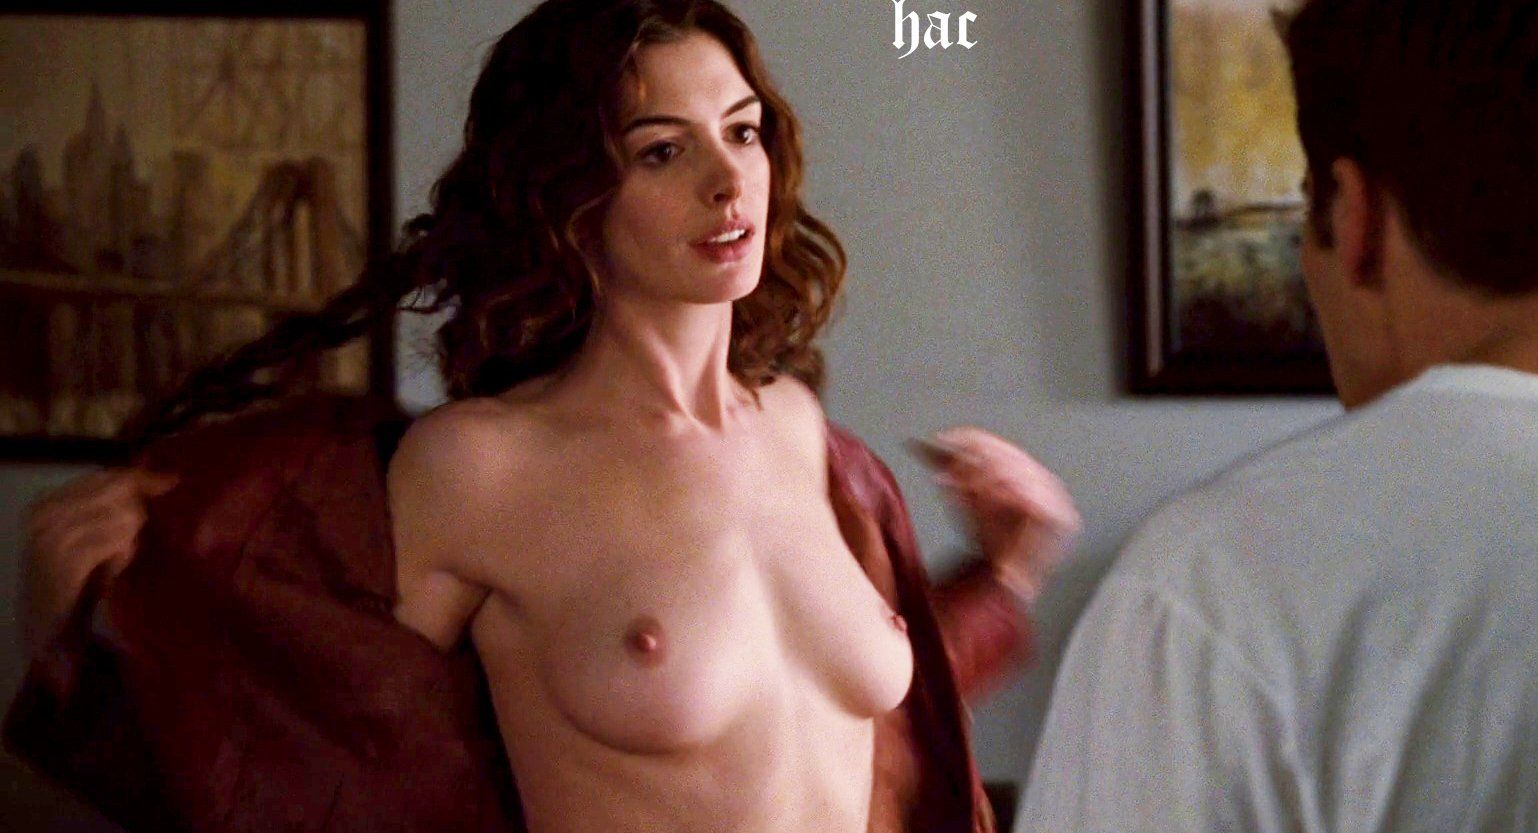 Anne Hathaway Porno anne hathaway nude images - 29 new sex pics. comments: 2